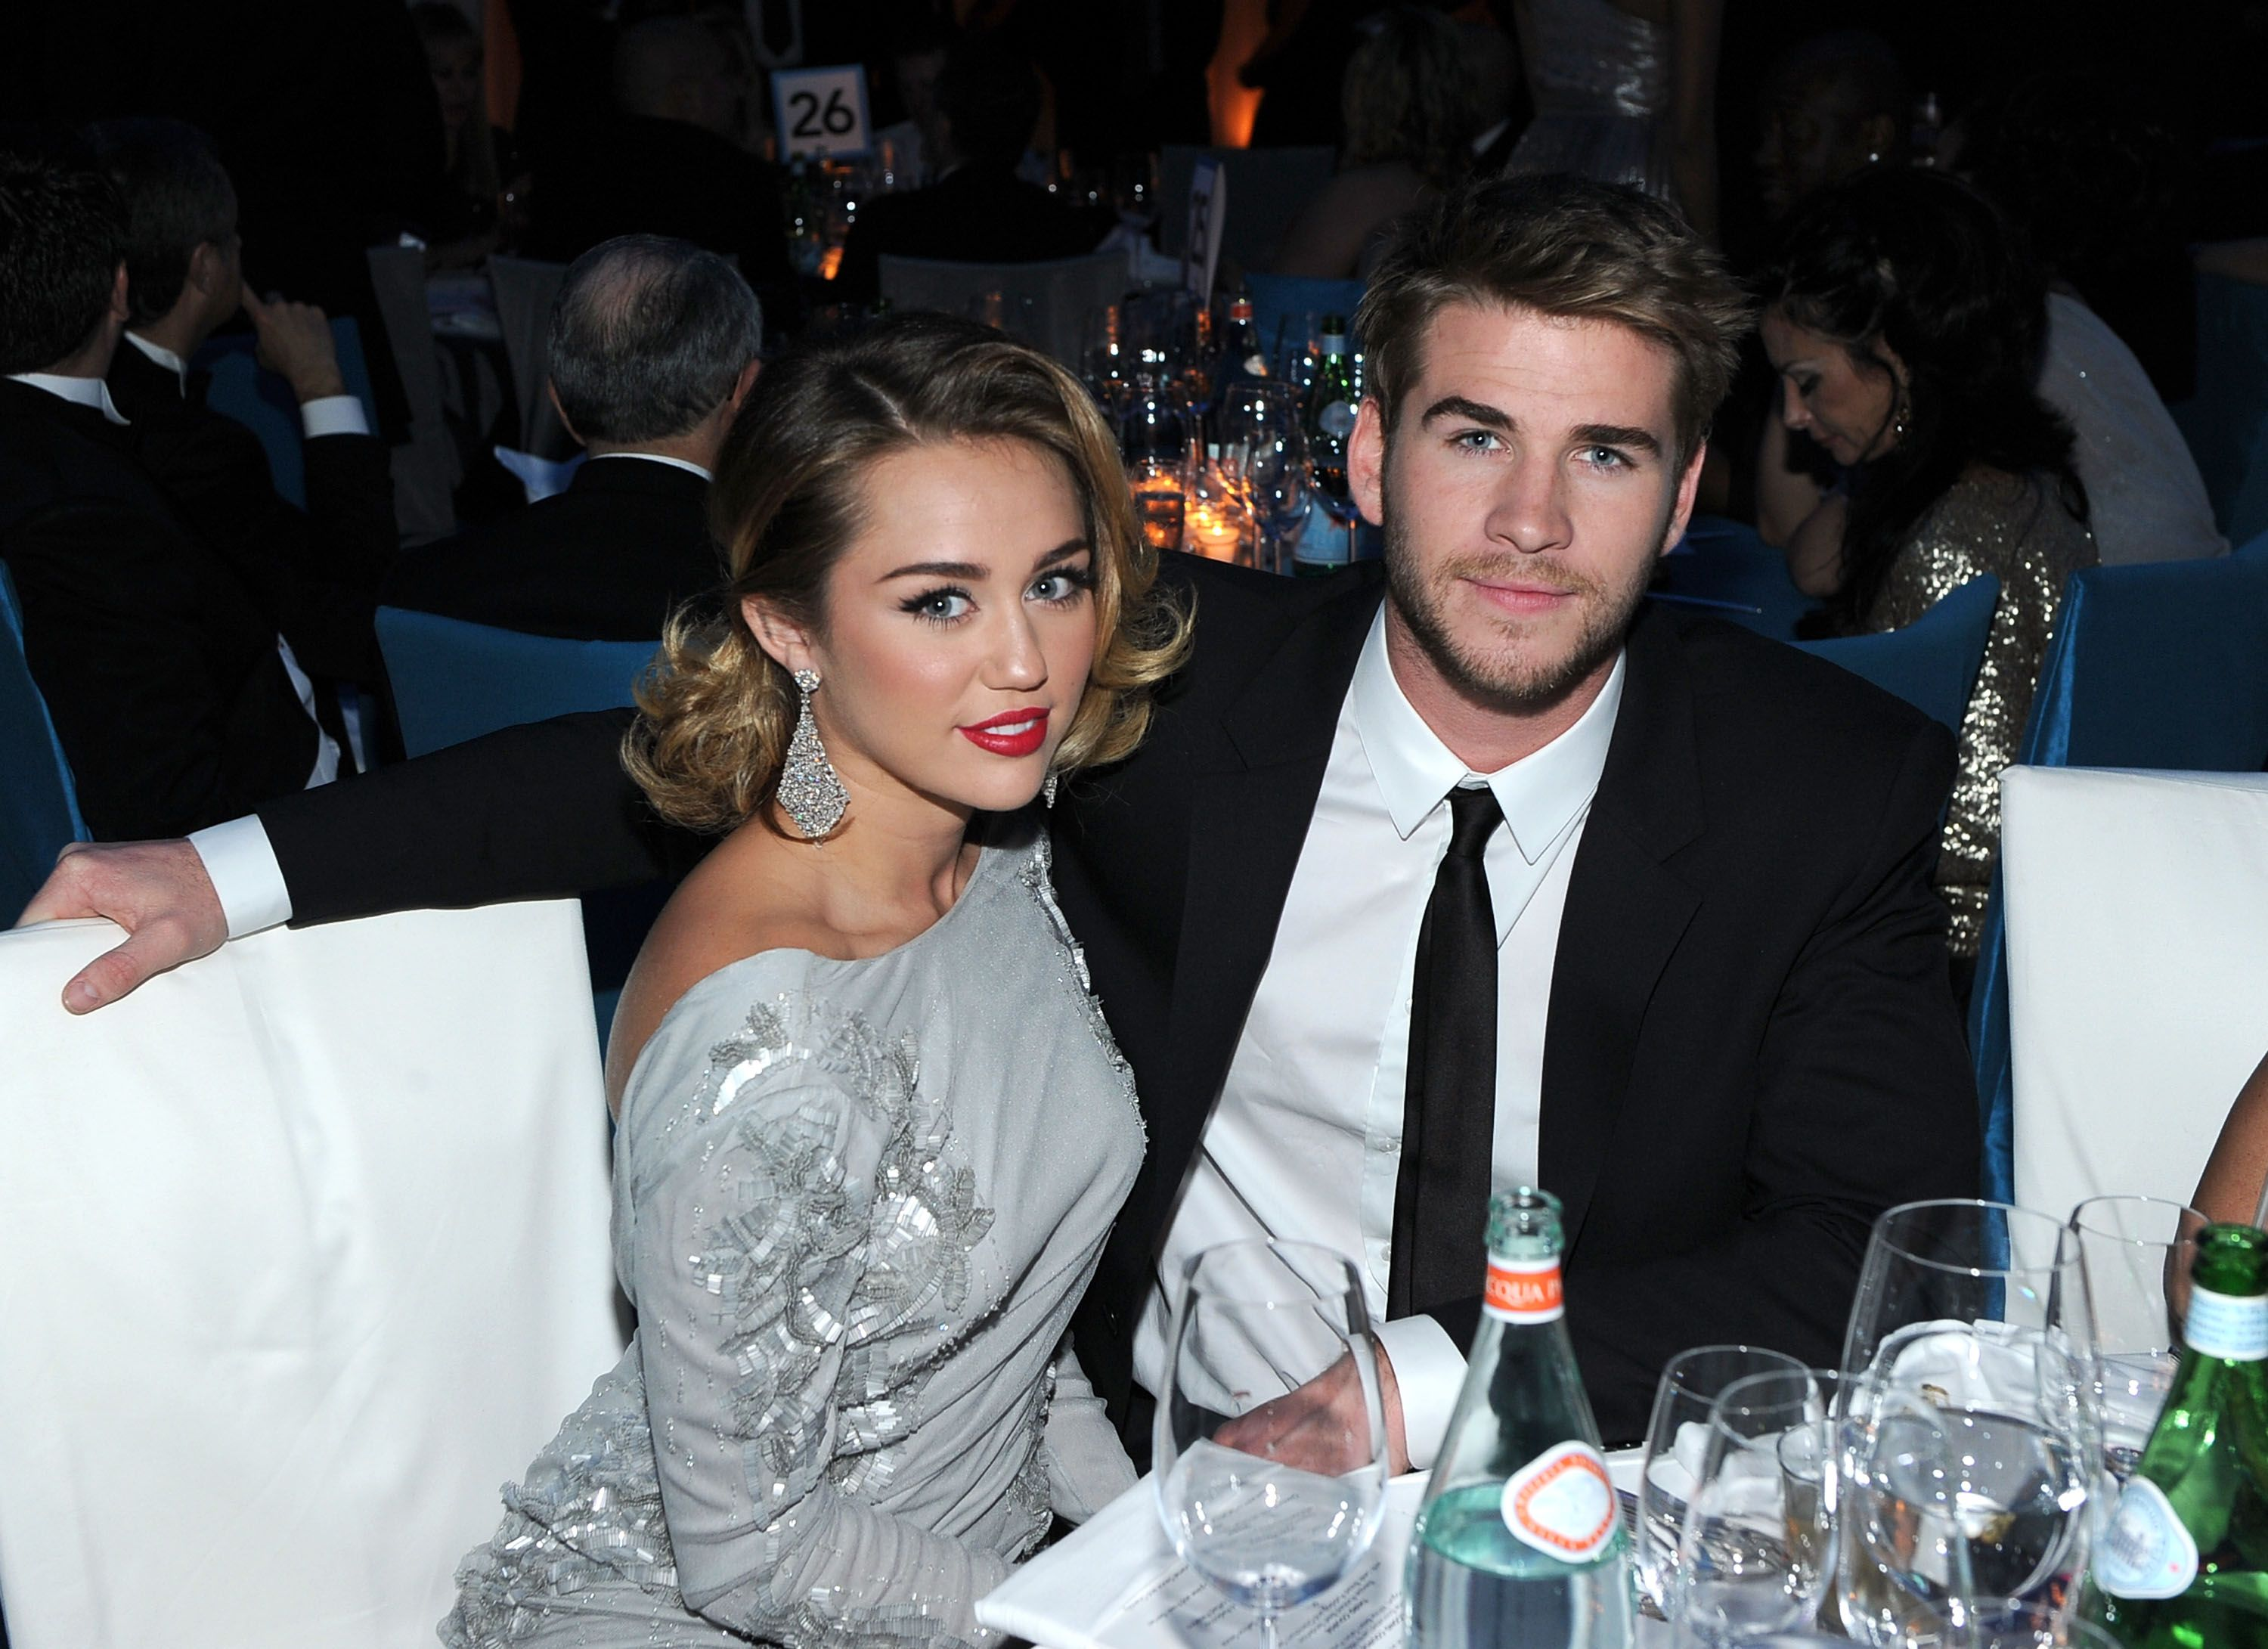 Miley Cyrus Reportedly Struggled With Liam Hemsworth's Secret Partying and Dark Moods